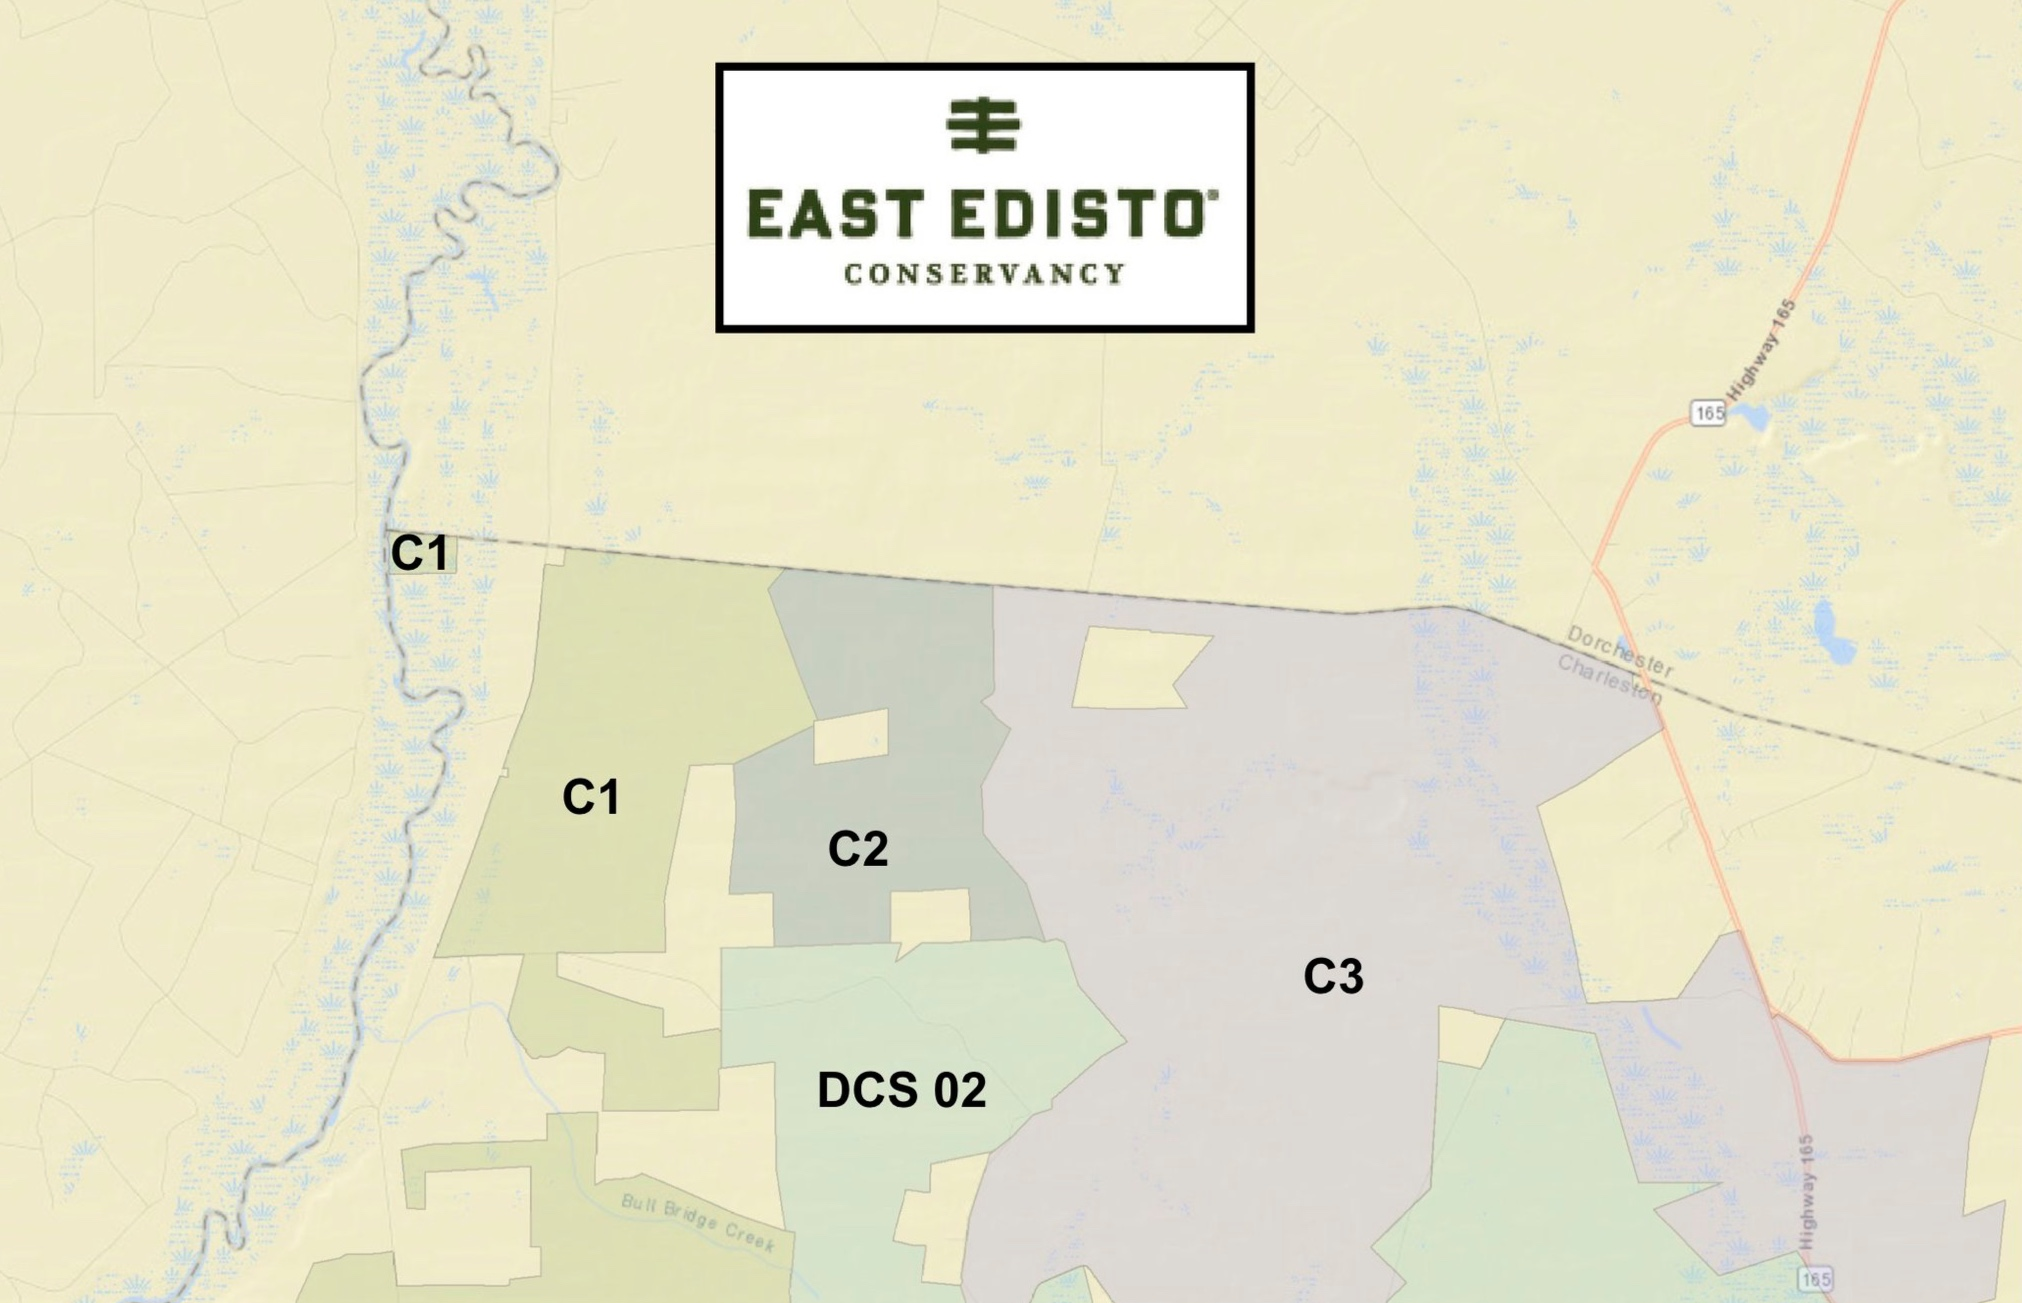 MAPS - These maps are provided to help landowners and potential landowners understand the impact of the covenants on their property or properties they are considering purchasing.